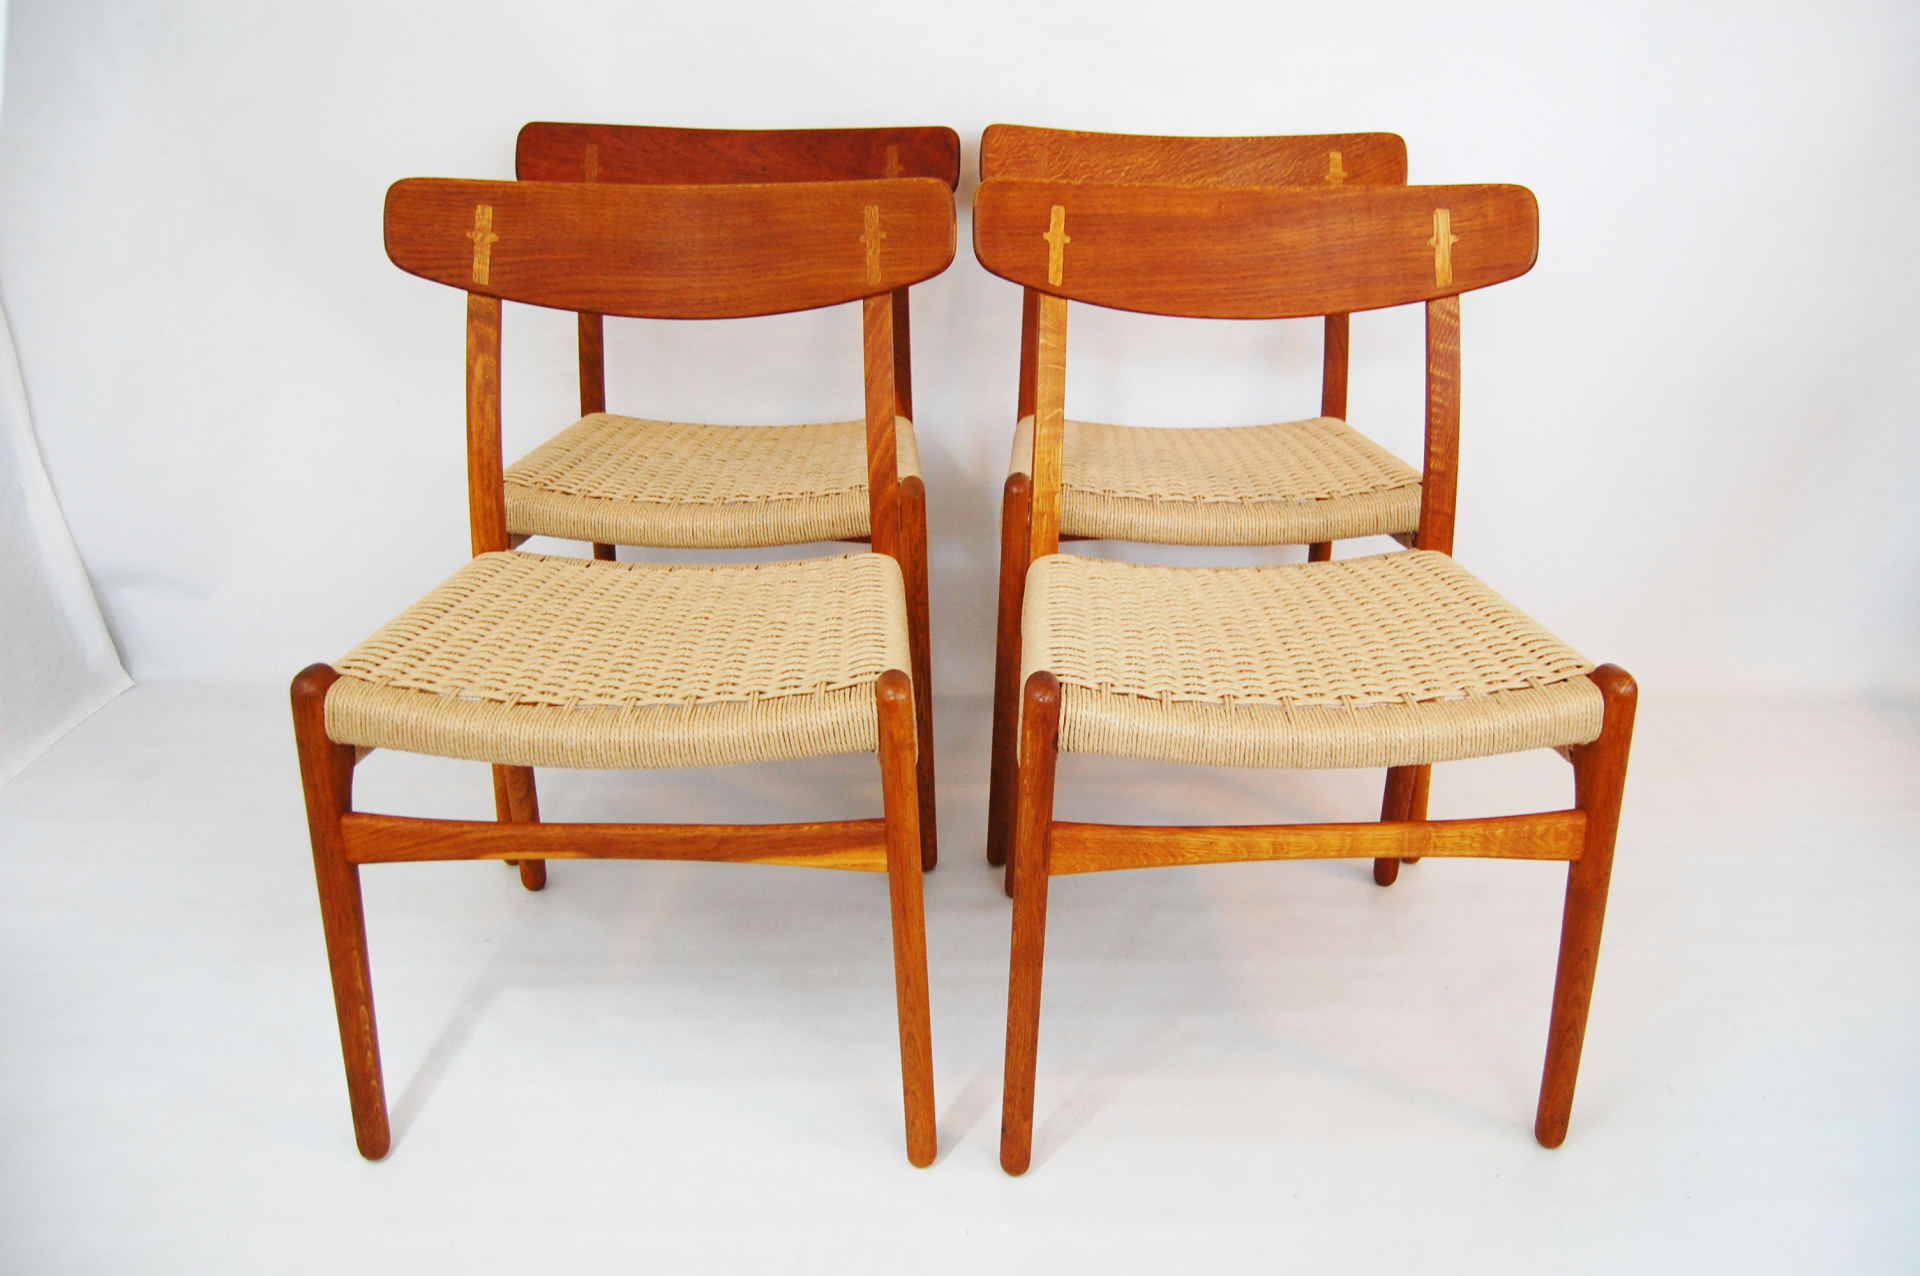 North west, West coast, mcm, mod, mid century modern, vintage, furniture, teak, mid century 55, Hans Wegner ch23, ch-23, dining chair, paper cord, midcentury55, Danish Modern, Sofabed, Seattle, Washington, Moller, Butterfly joint, oak, dining room furniture,